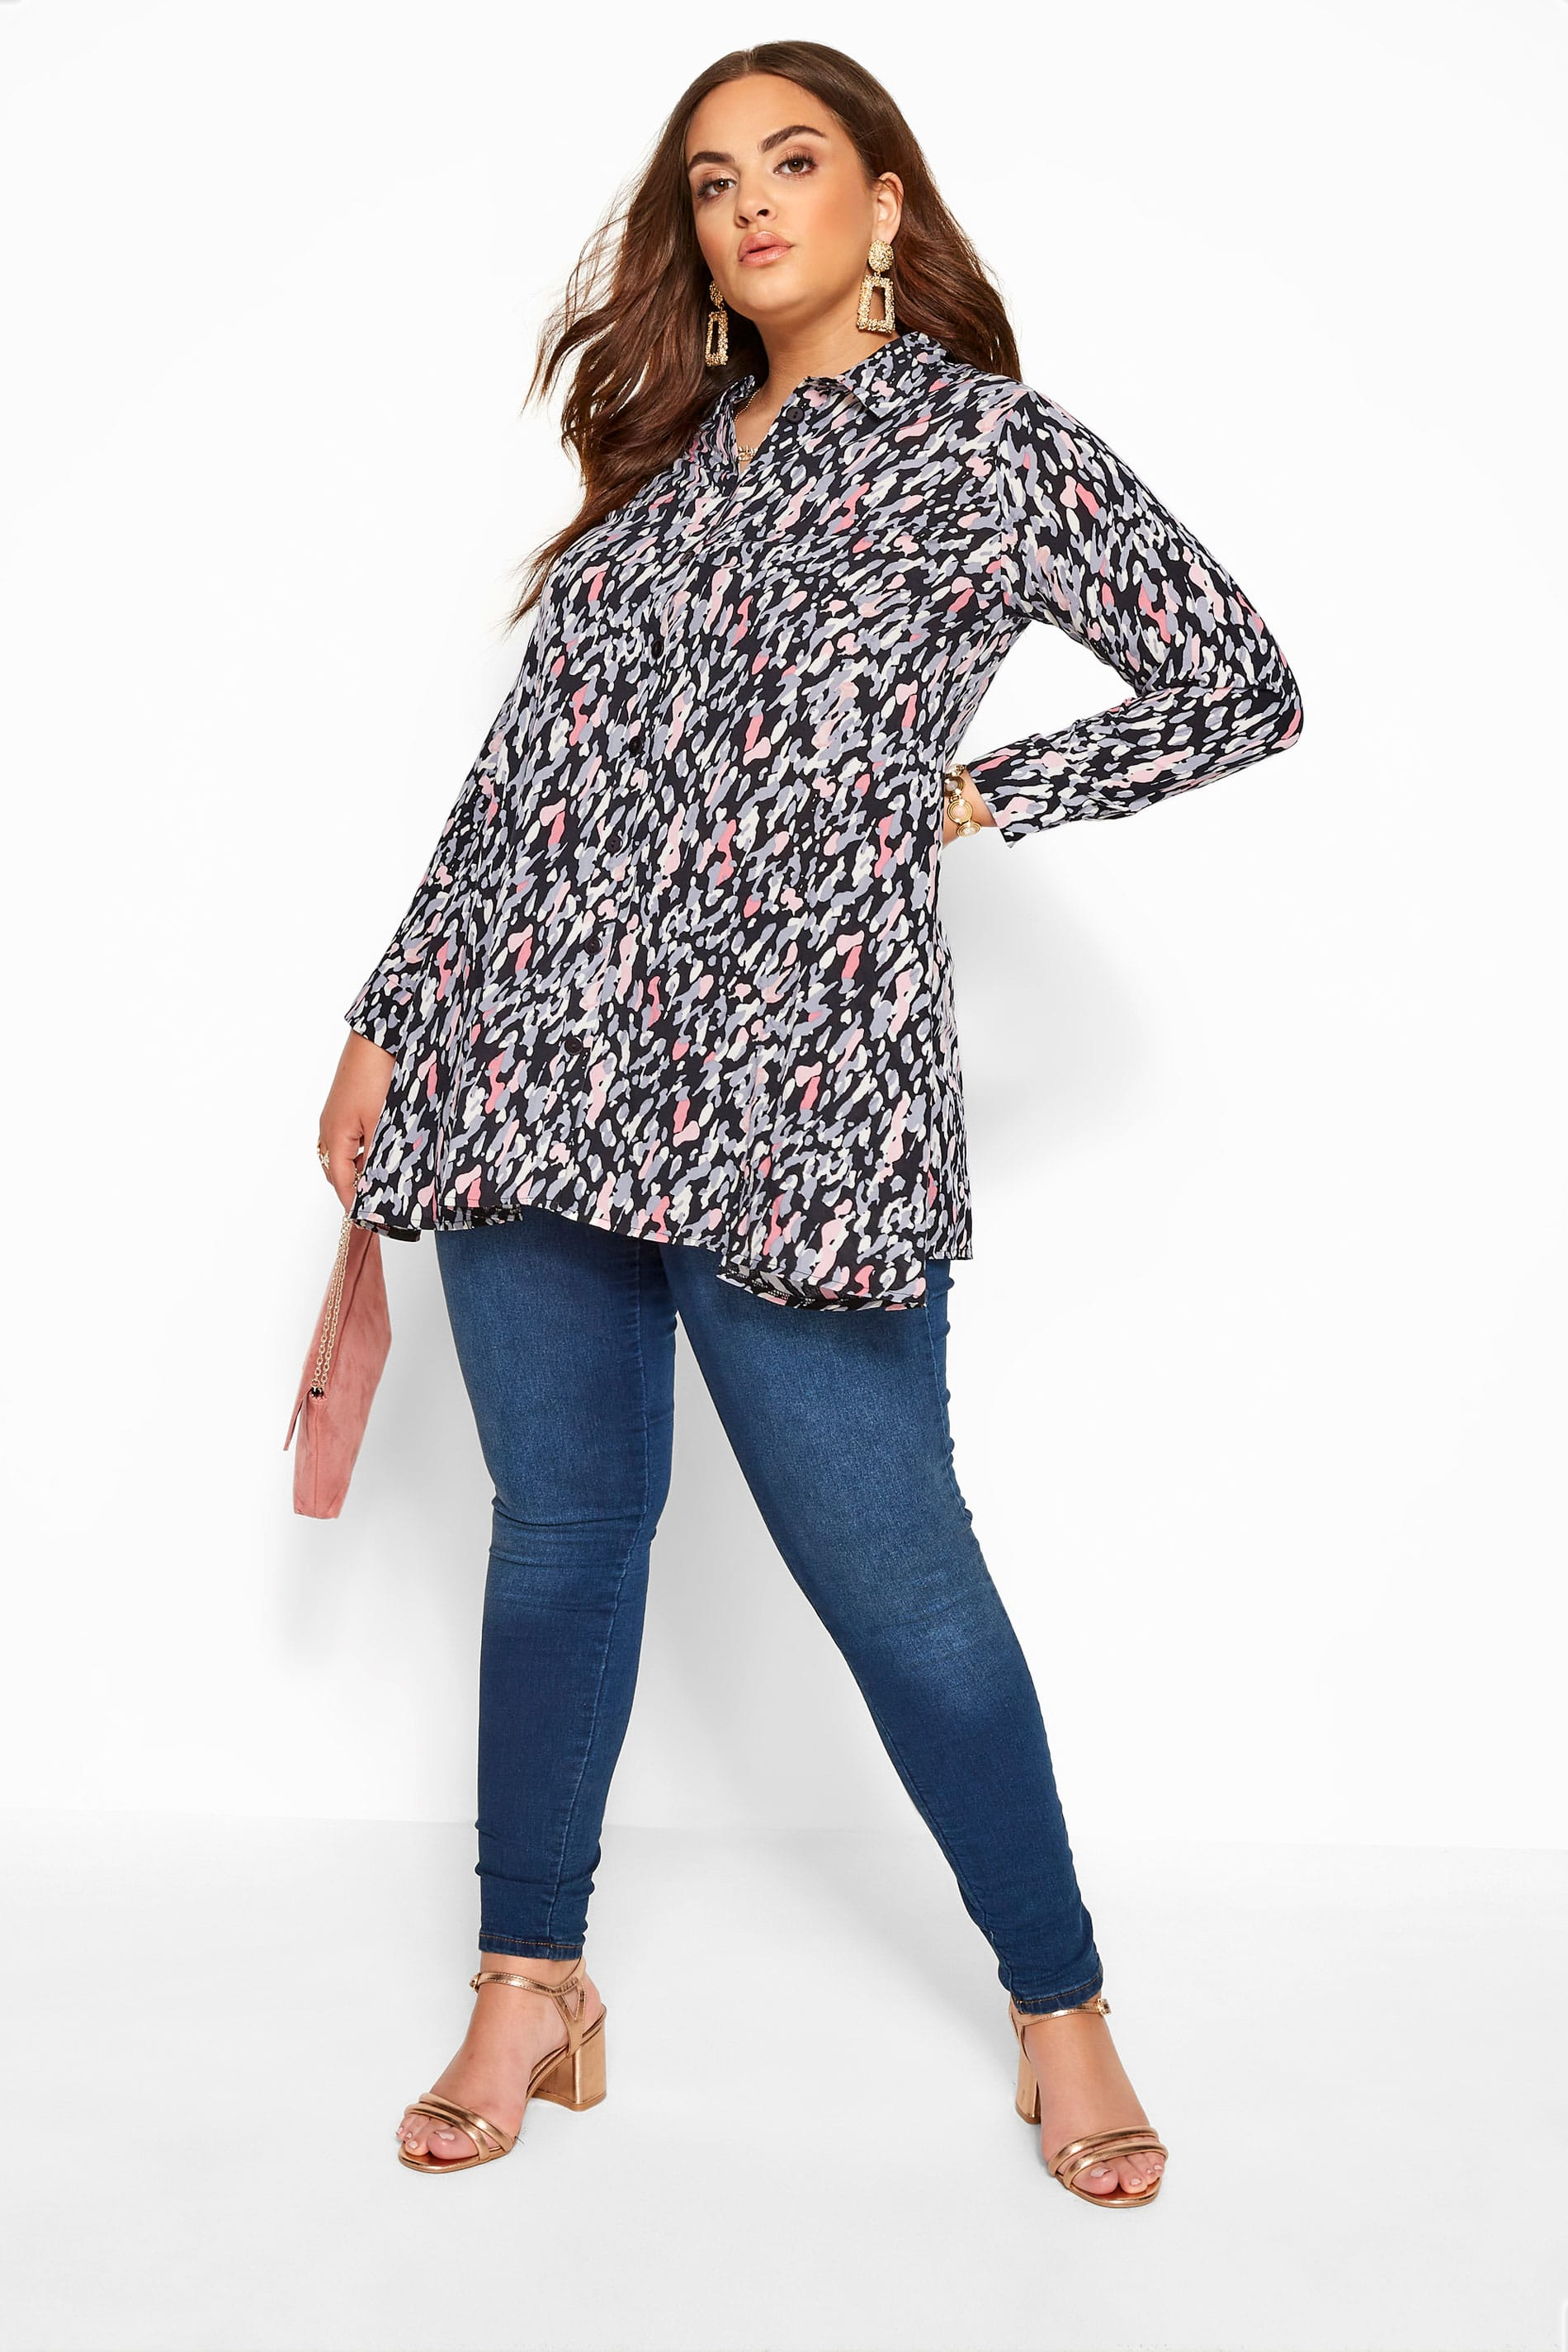 Yours Clothing (@yoursclothing)   Twitter